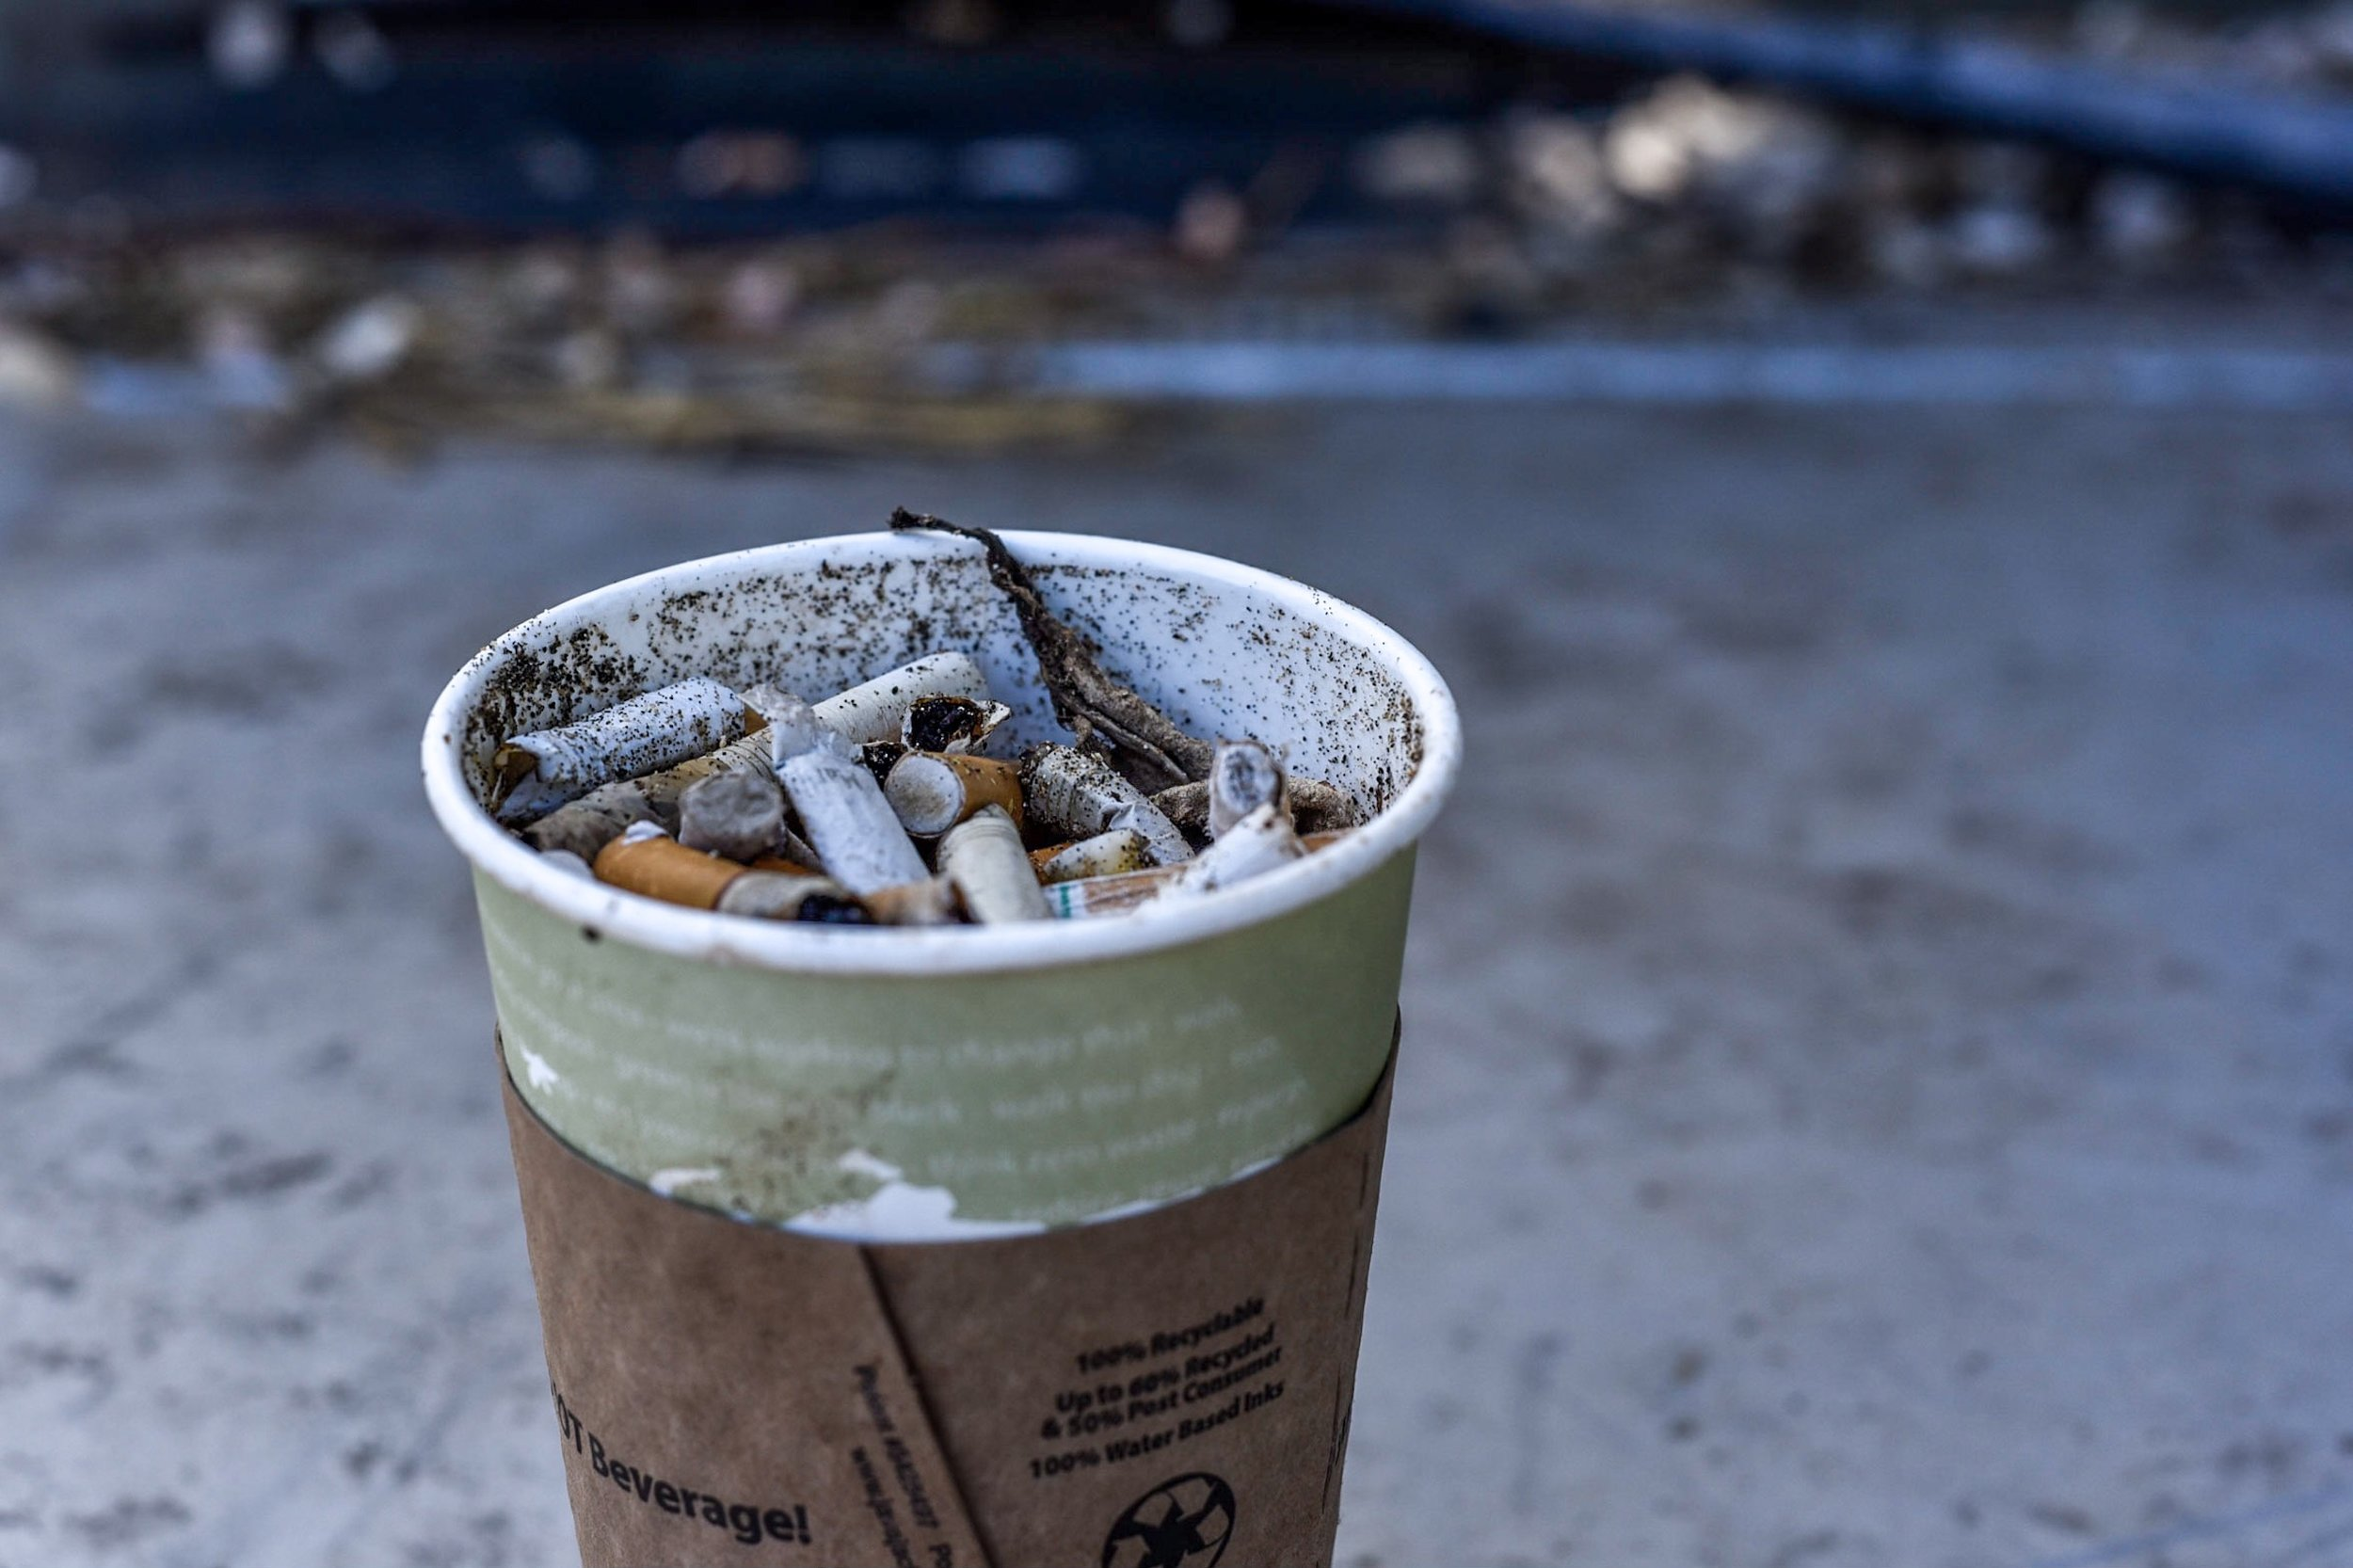 A full cup of cigarette butts retrieved from a morning's walk